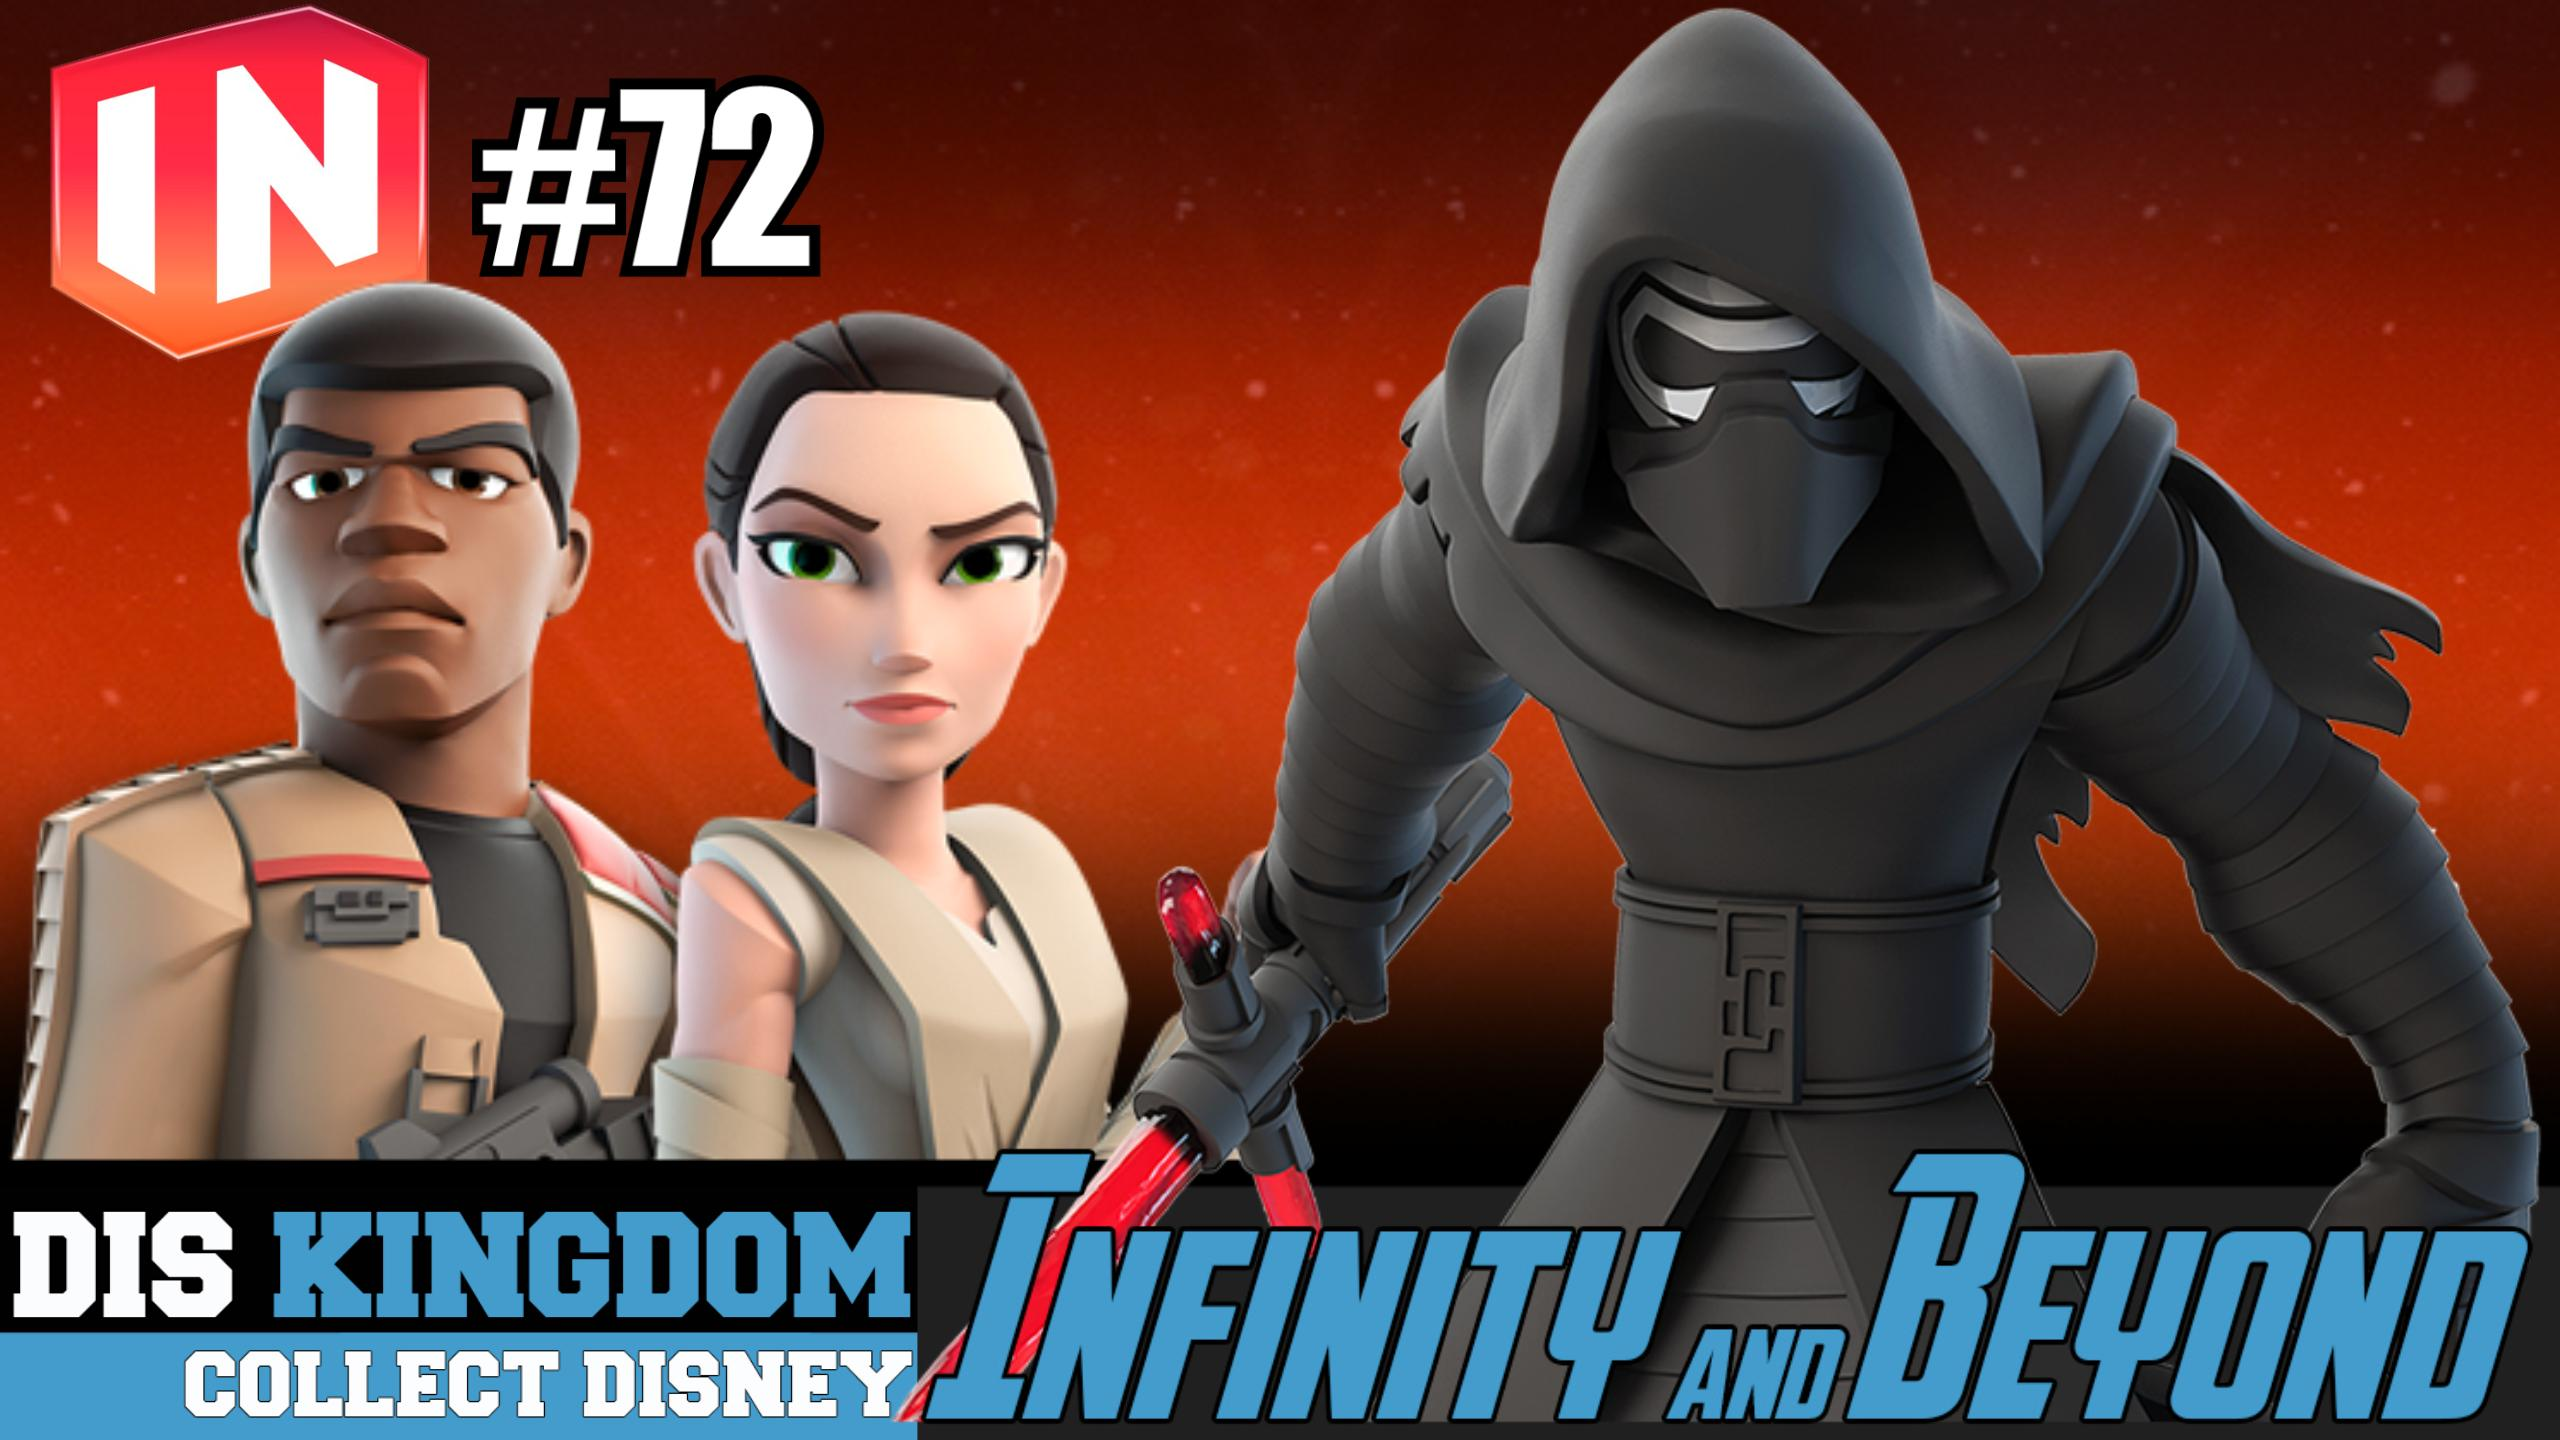 Disney Infinity & Beyond #72 – Star Wars: The Force Awakens & Light FX